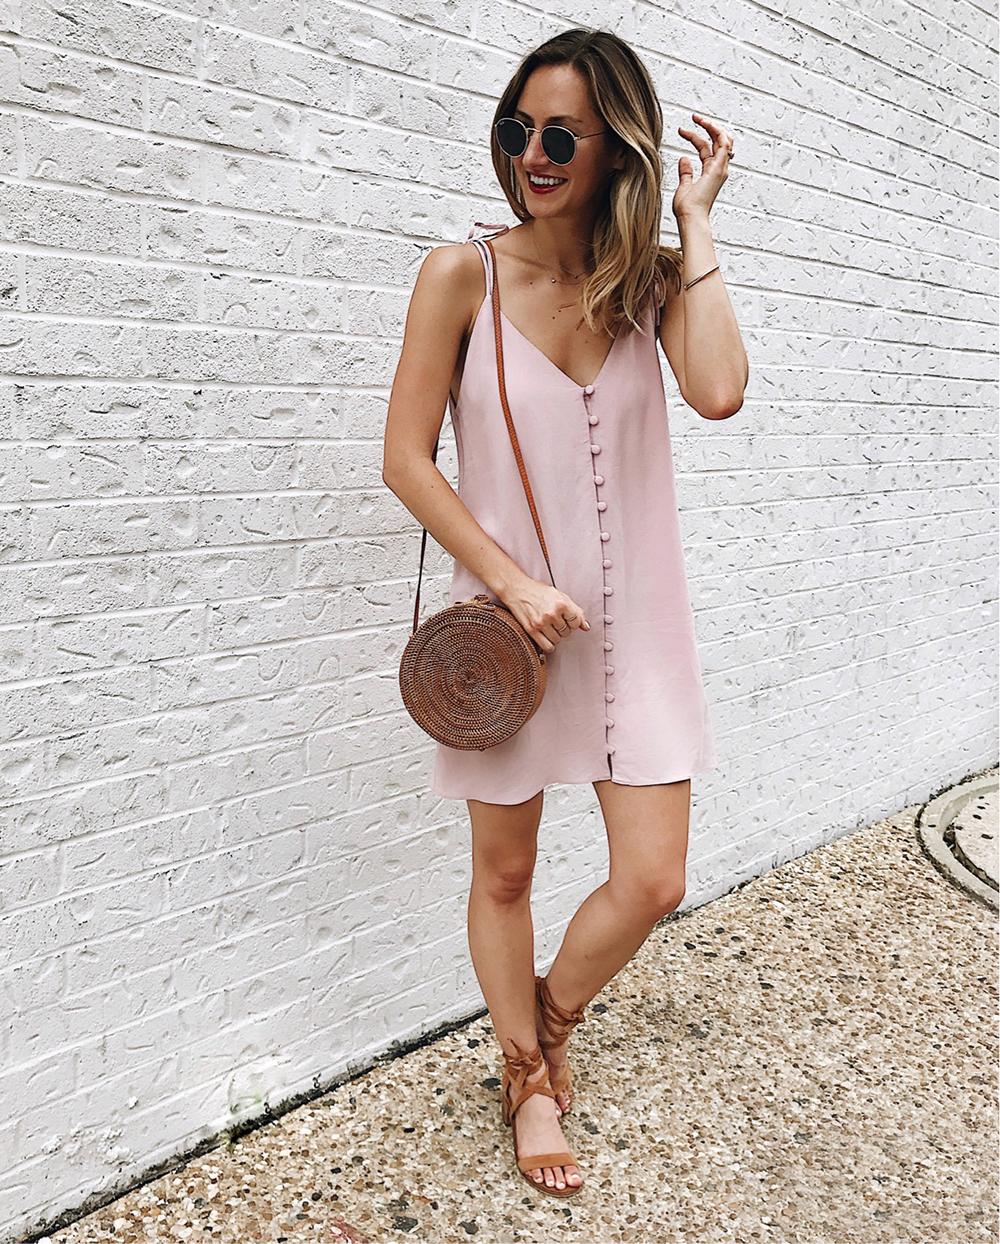 livvyland-blog-olivia-watson-instagram-roundup-june-summer-style-blush-button-up-slipdress